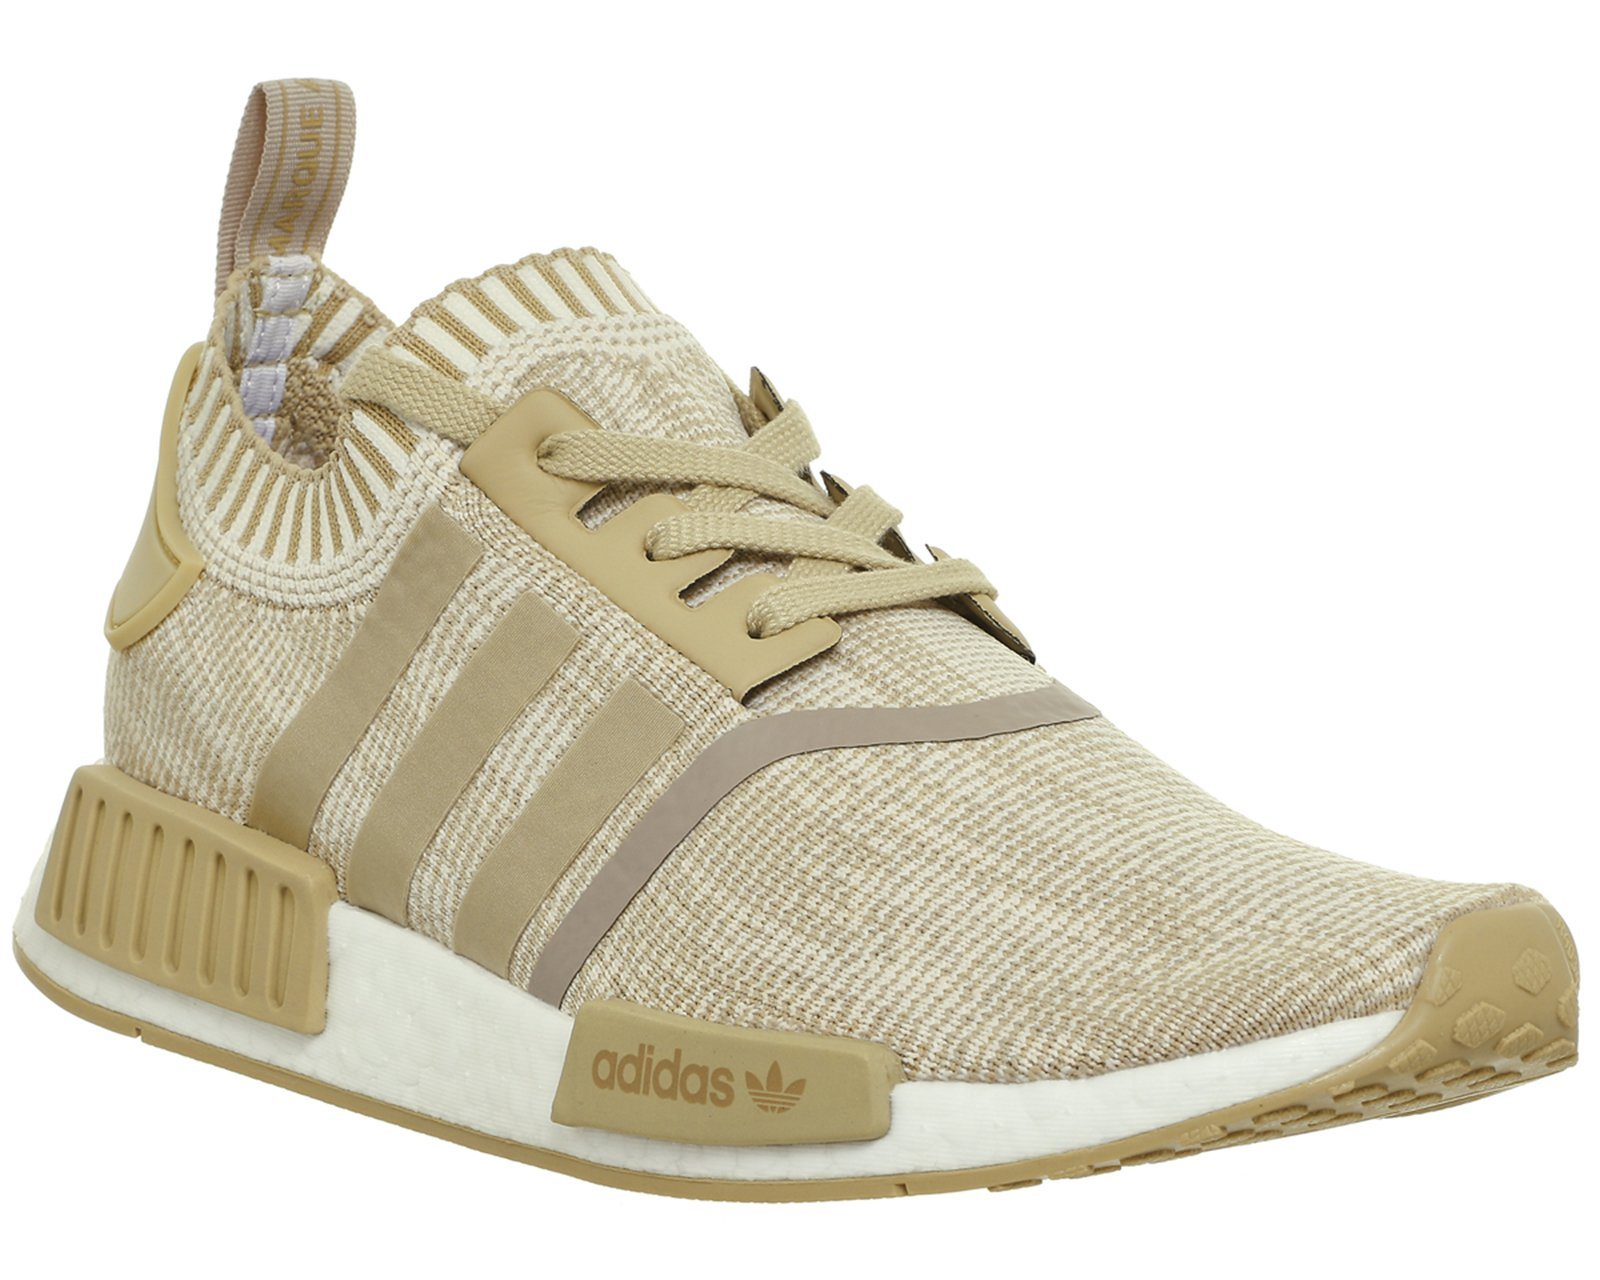 b6db66c8d Galleon - Adidas NMD R1 PK  Linen  - BY1912 - Size 11.5